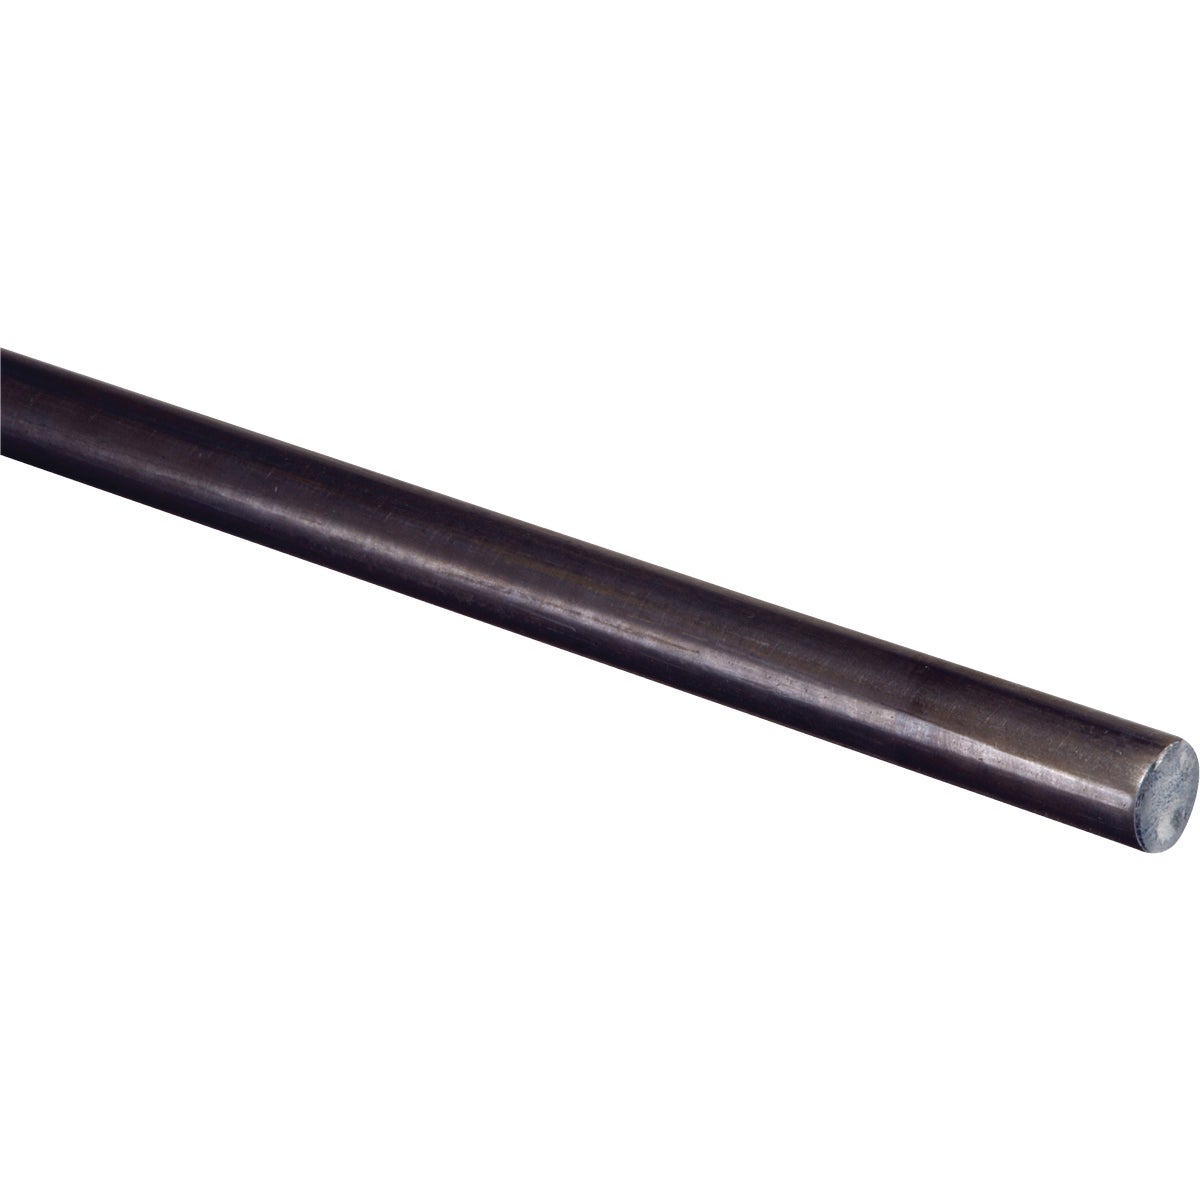 3/8X48 PS SMOOTH ROD - N215350 by National Mfg Co